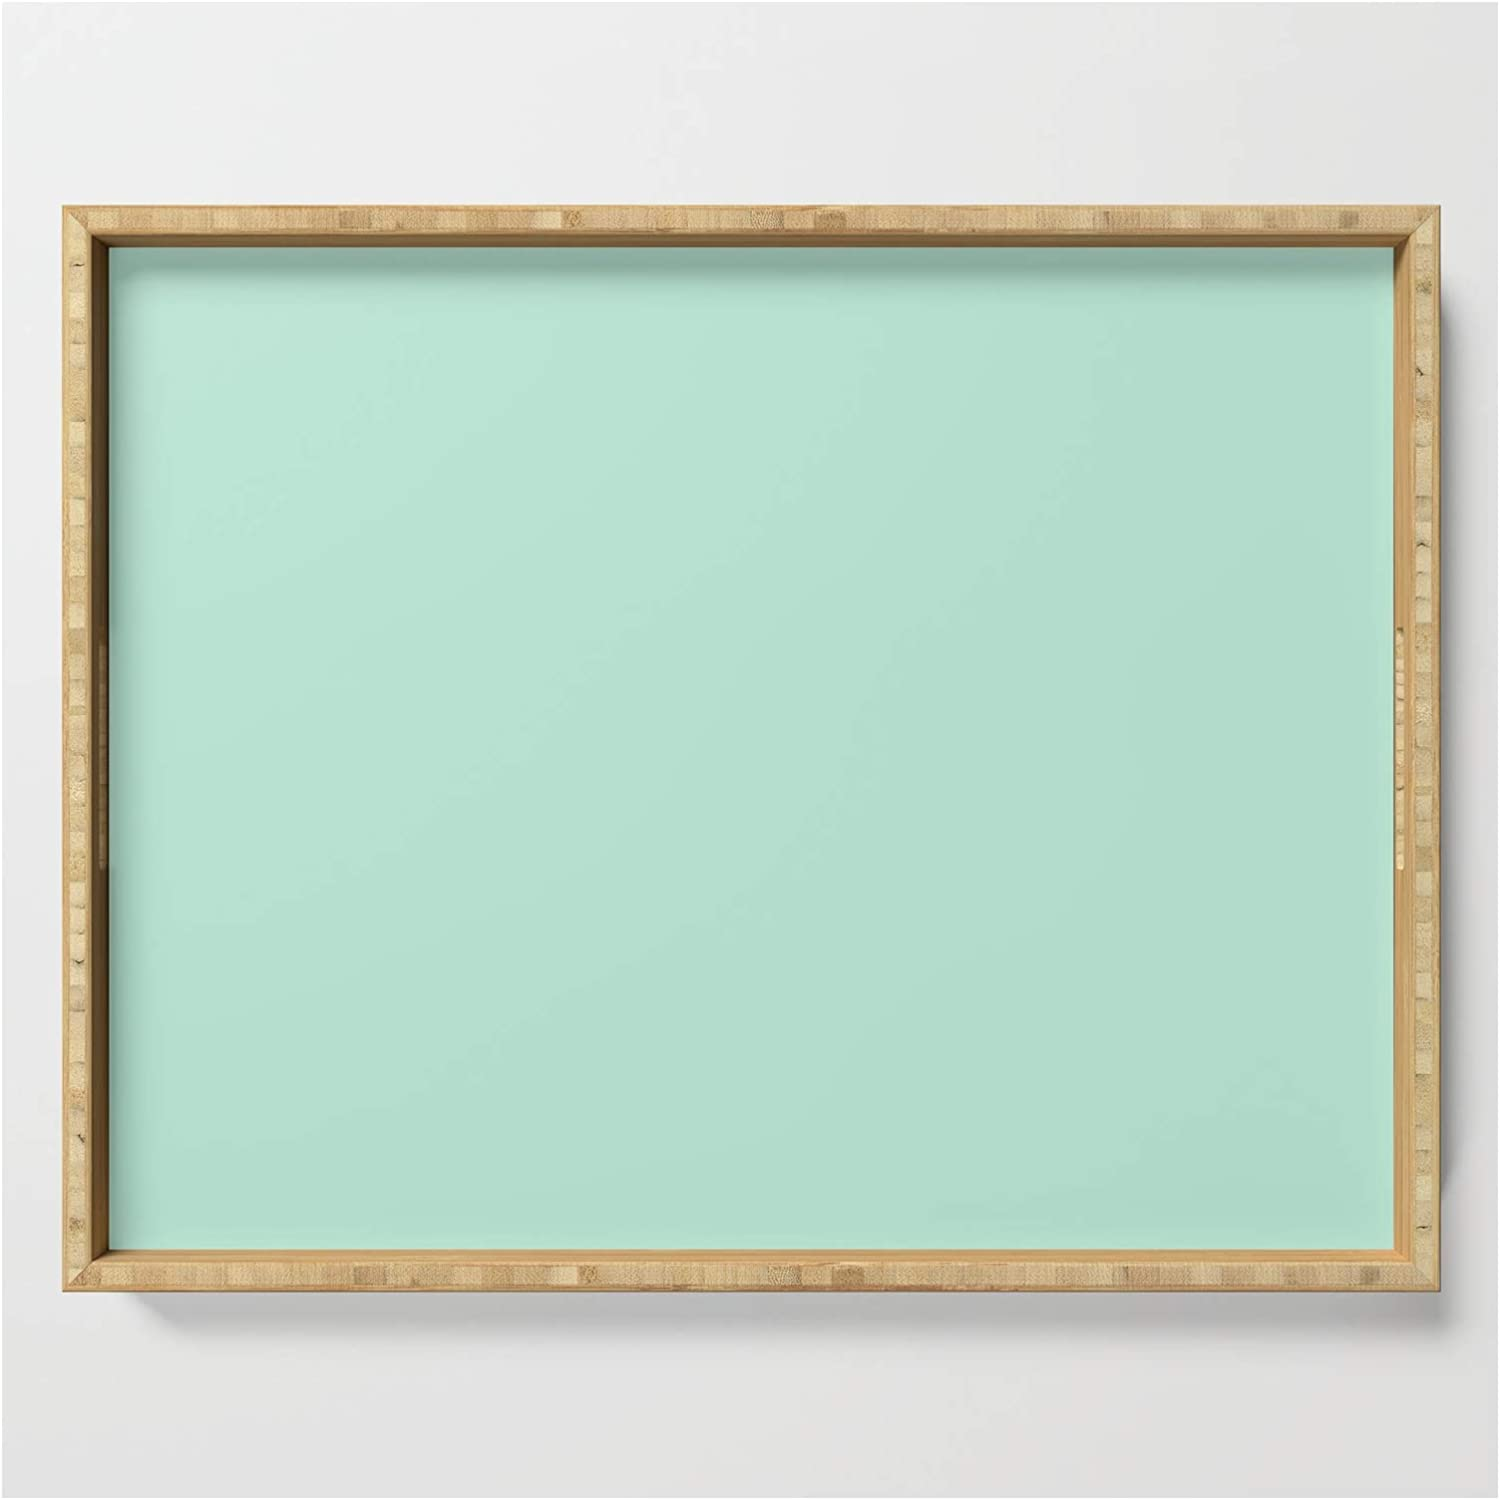 Simply Light Mint Green by Simple Luxe Serving Tray Our shop most popular on x 18